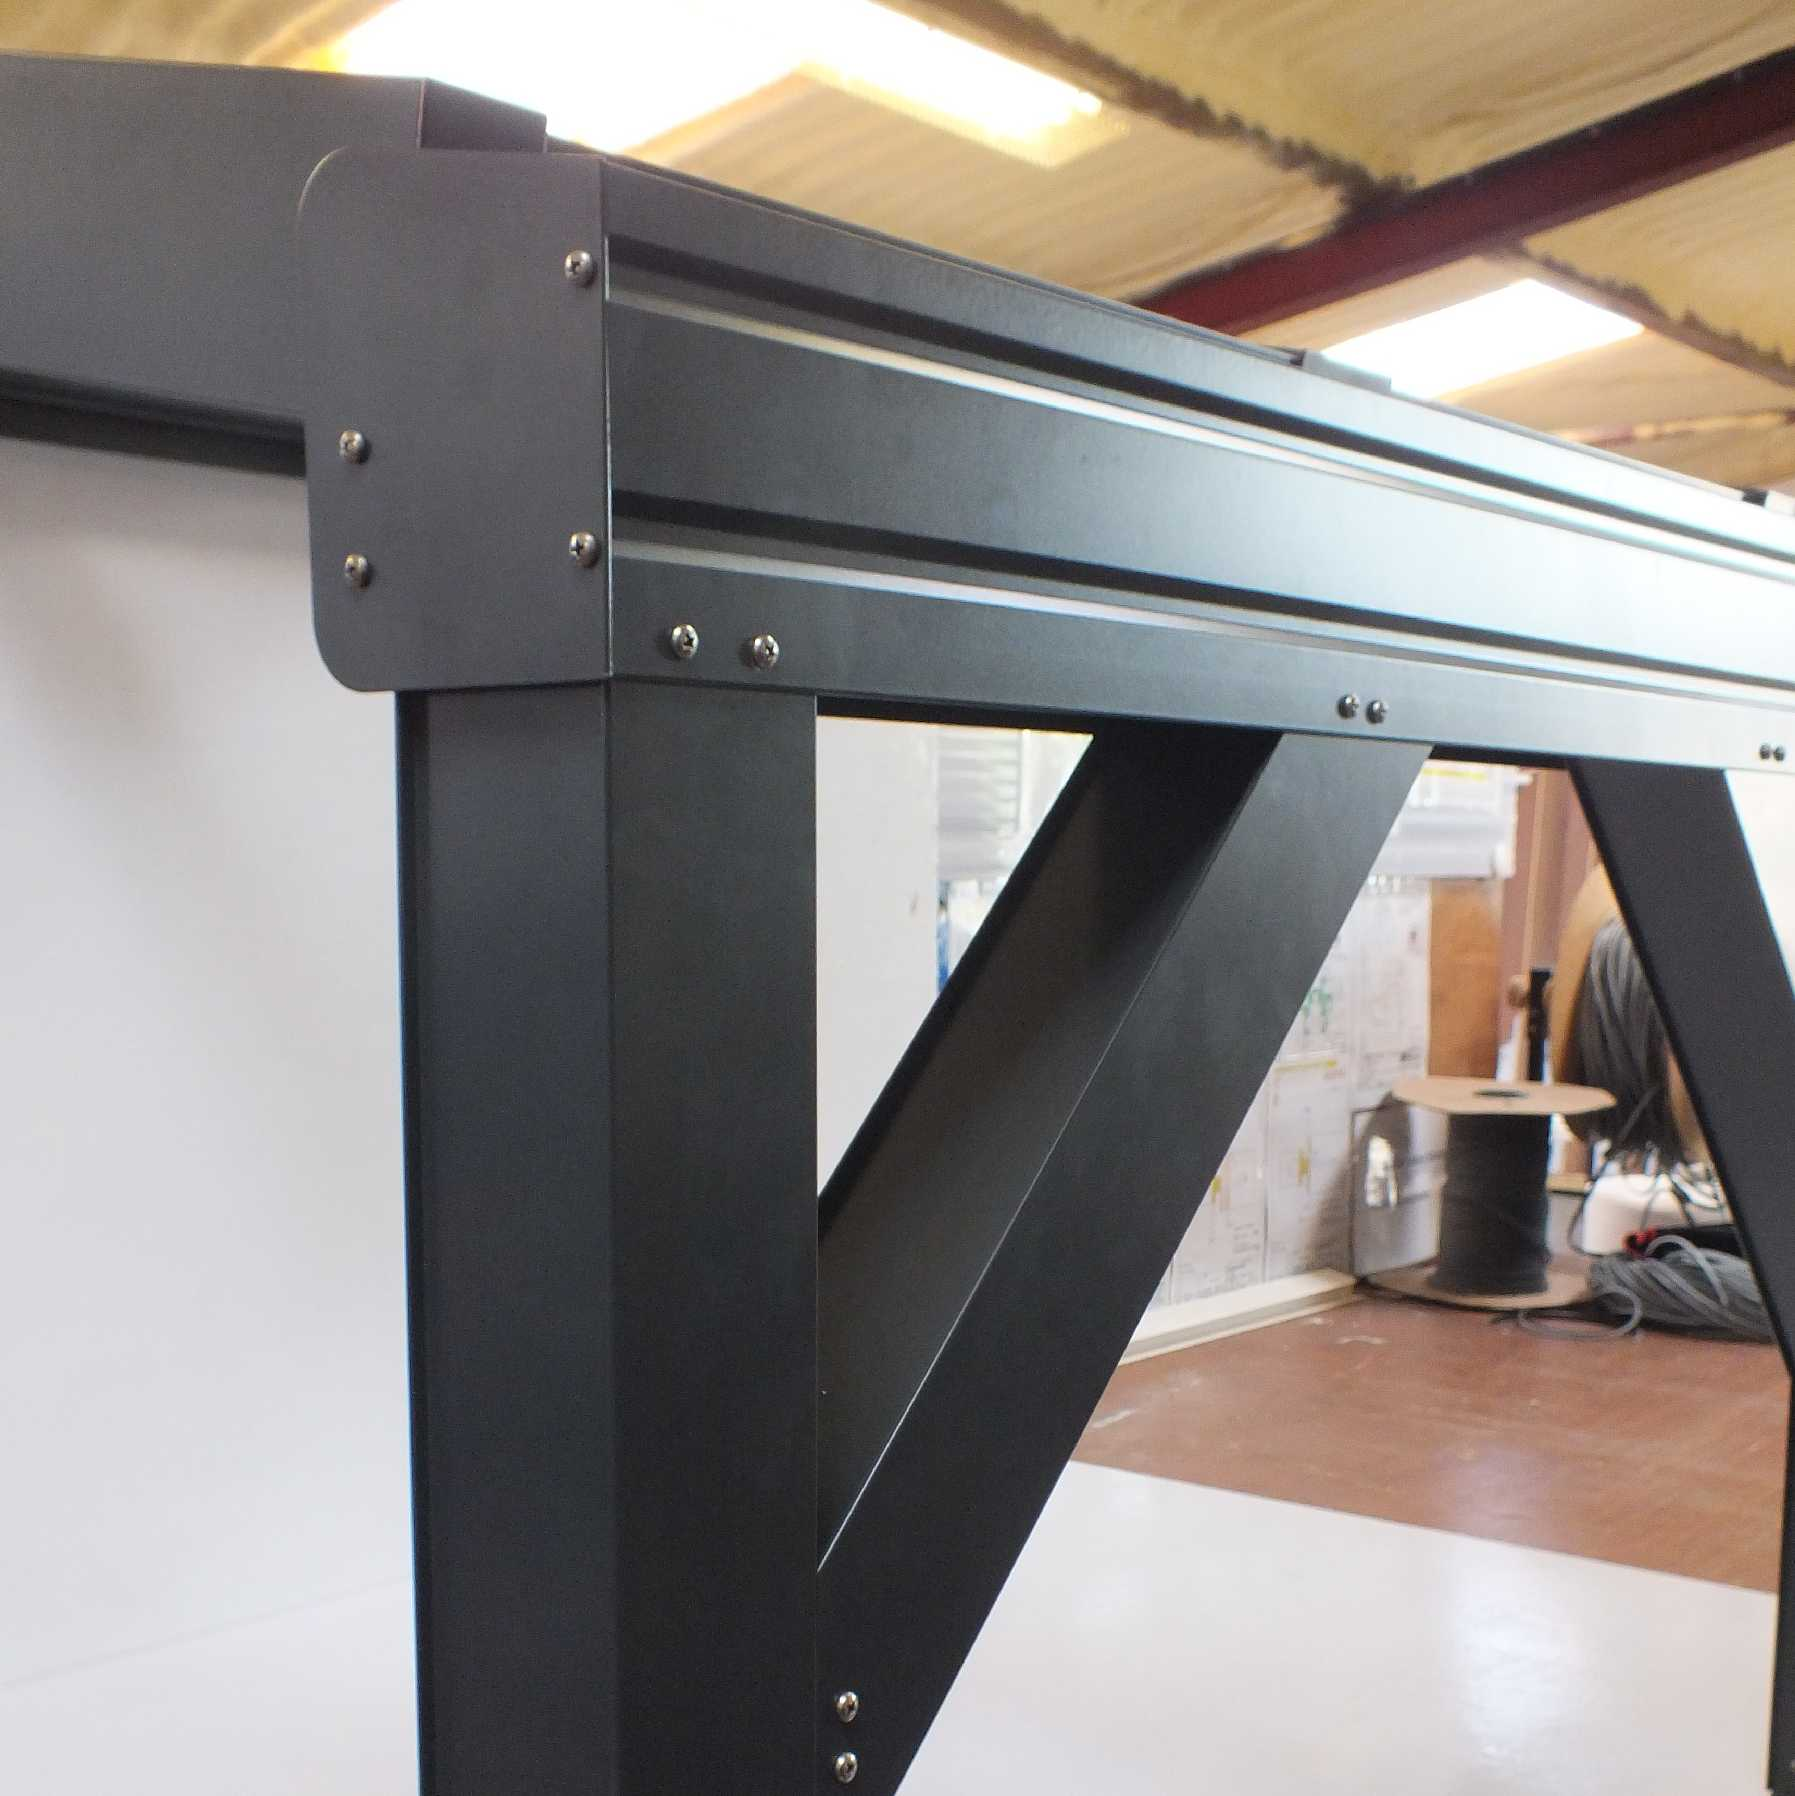 Omega Smart Lean-To Canopy, Anthracite Grey, UNGLAZED for 6mm Glazing - 7.7m (W) x 1.5m (P), (4) Supporting Posts from Omega Build